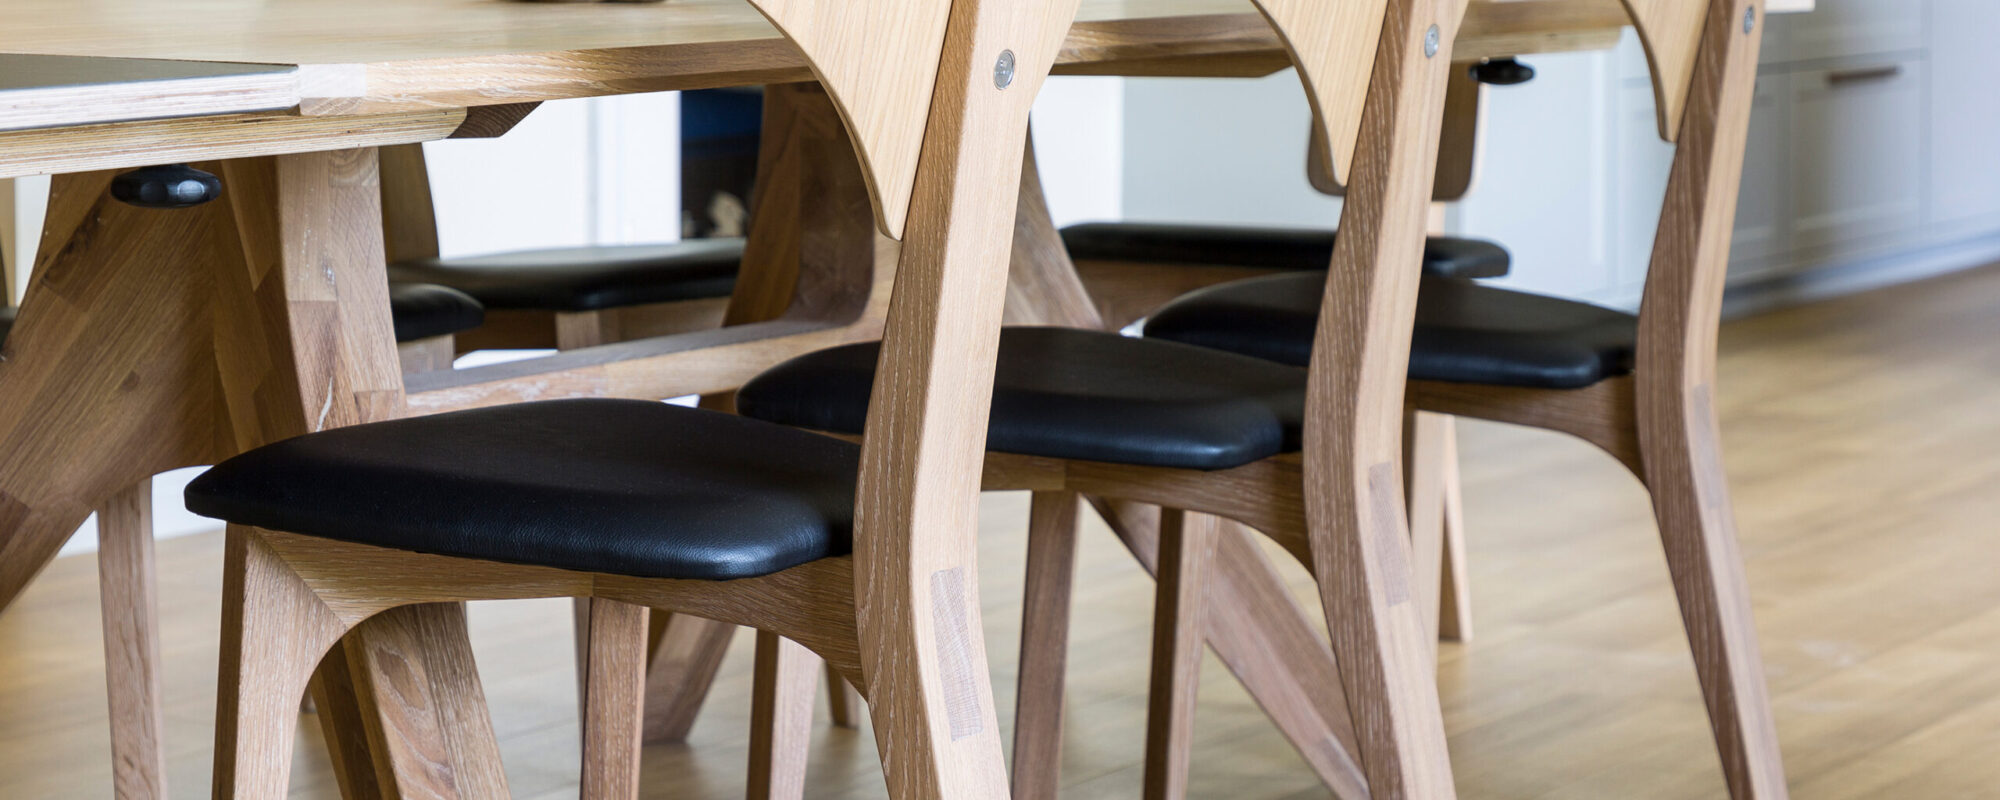 The Graphium Chair